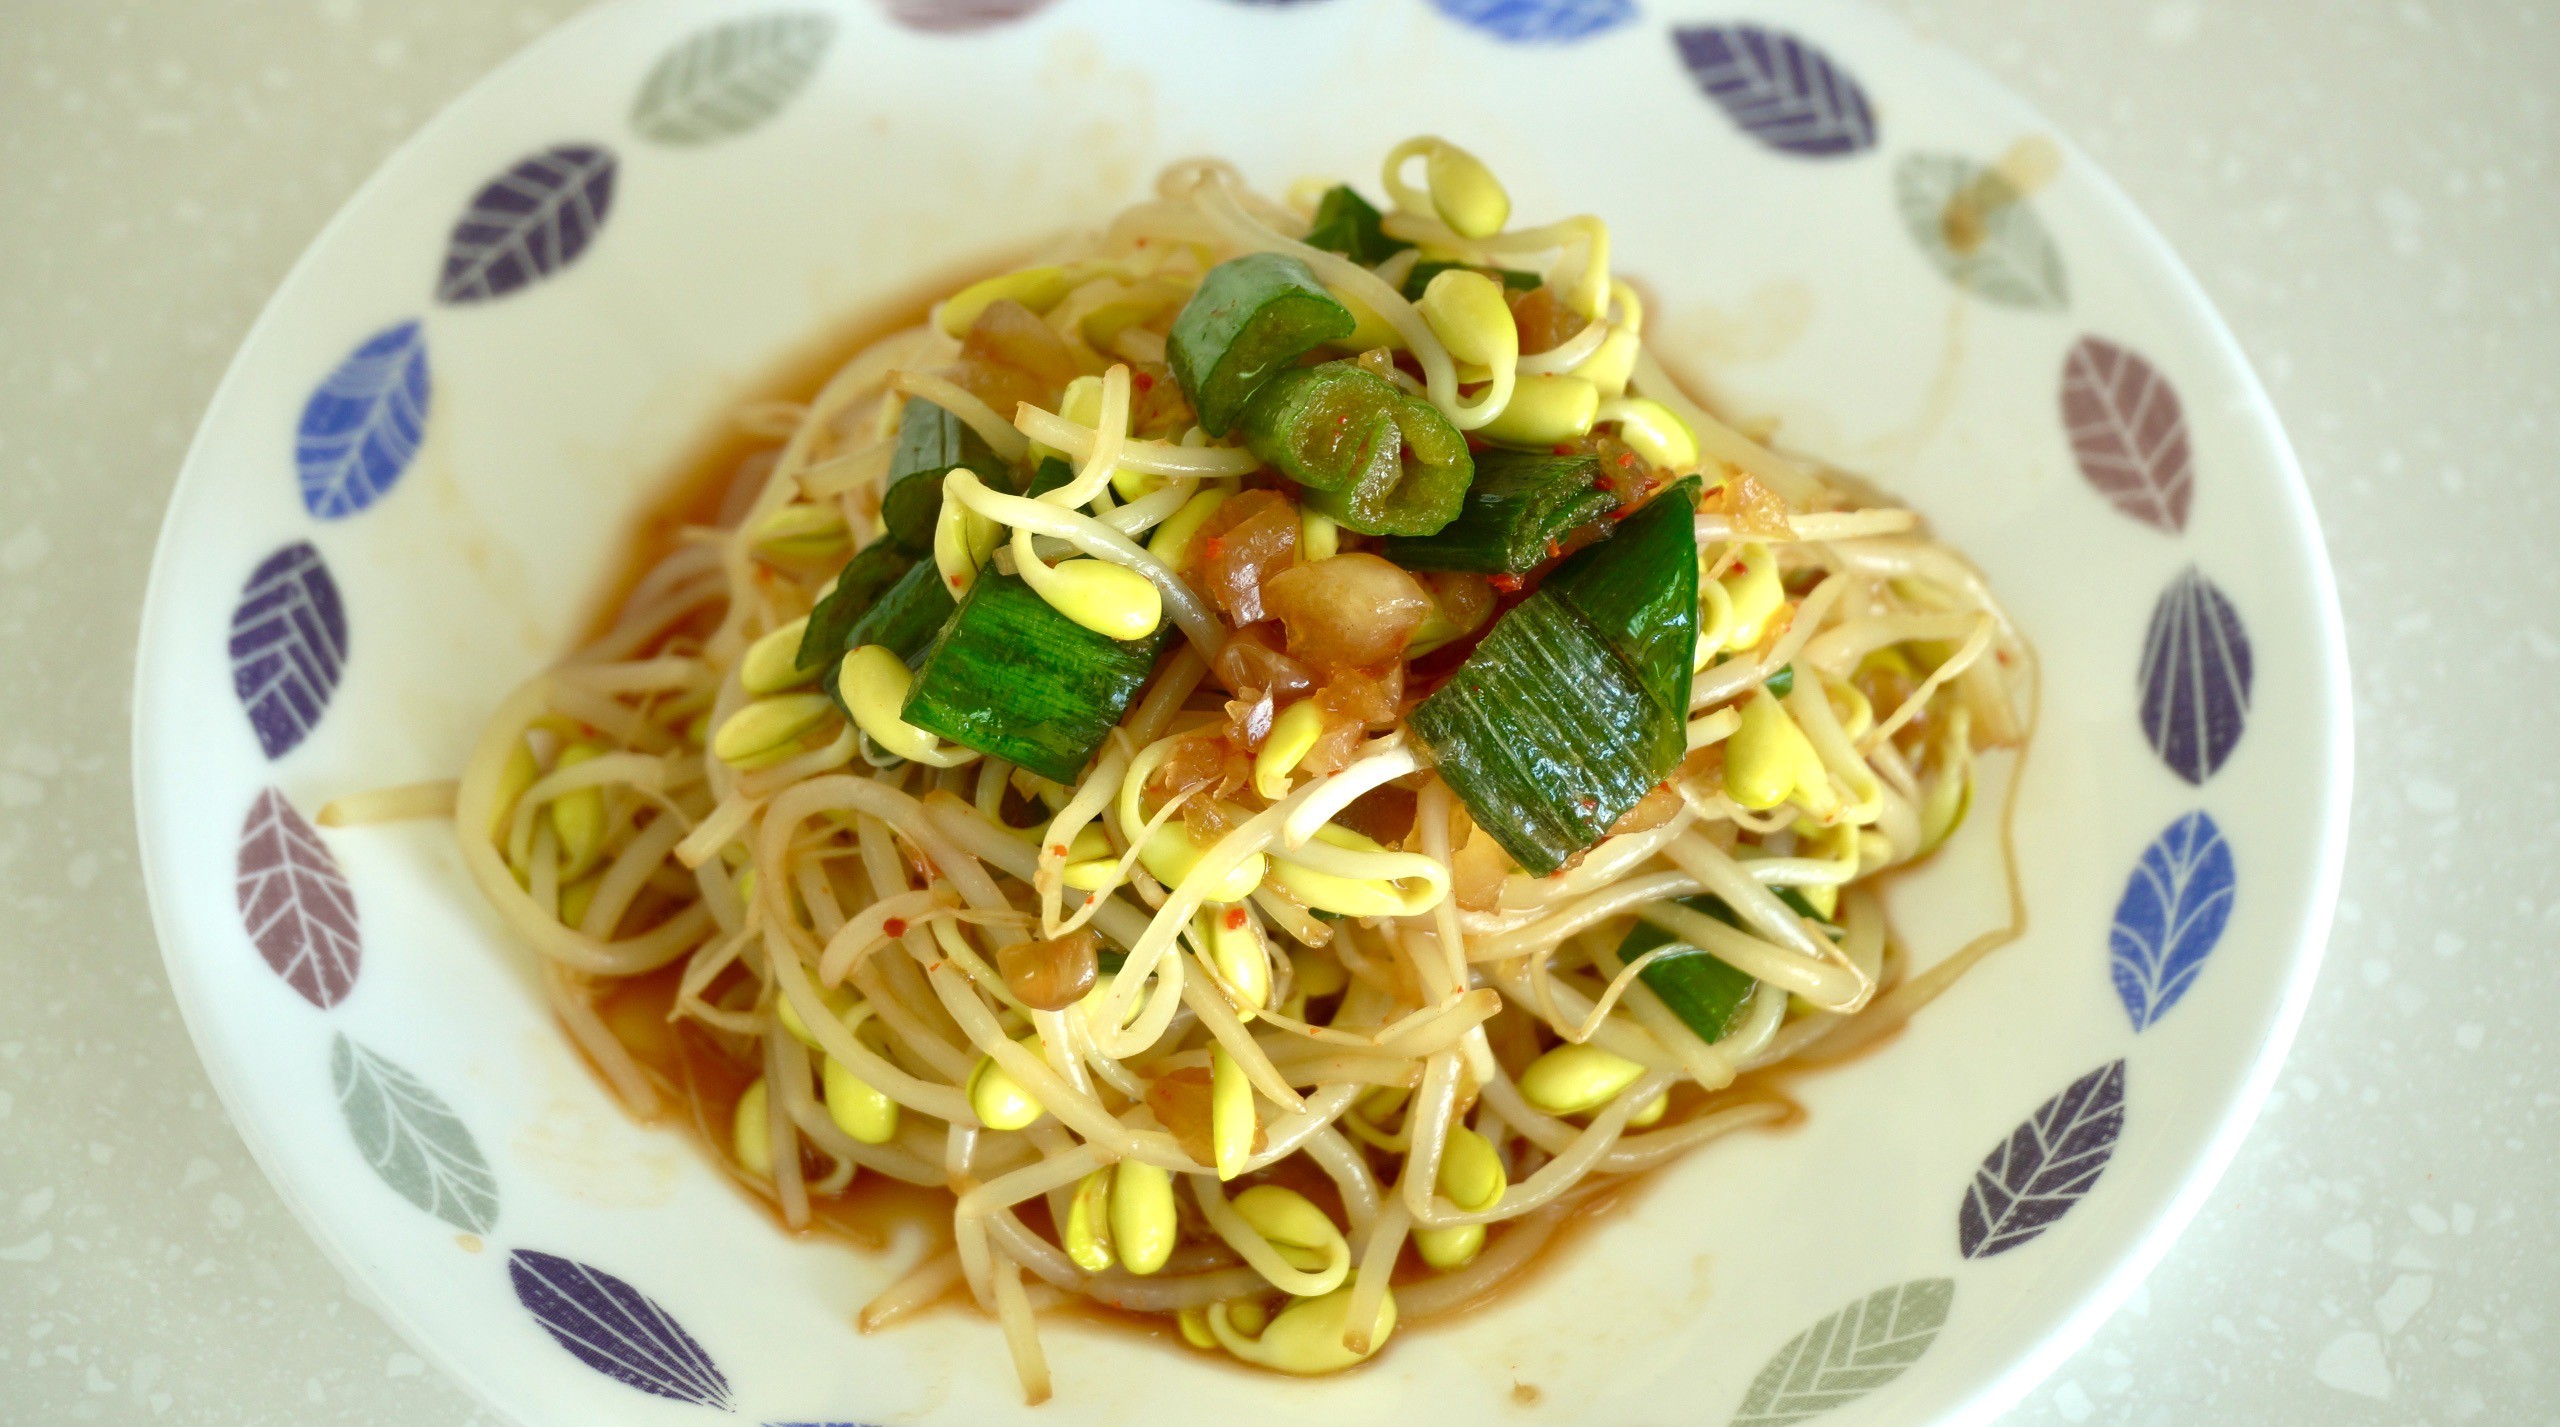 Crispy And Healthy Korean Soybean Sprout Recipe By John Lim The Cookbook For All Medium